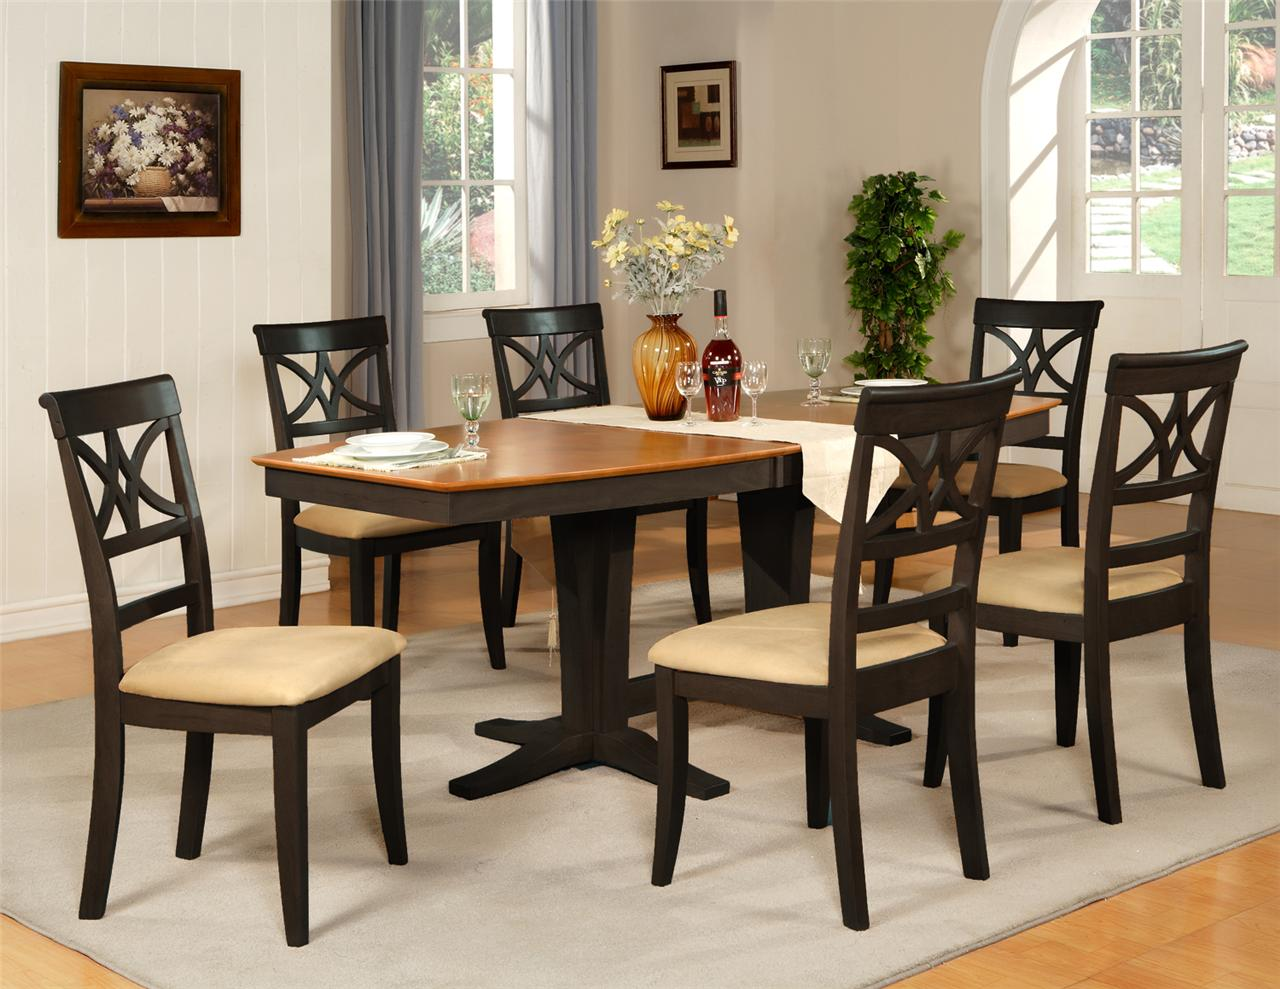 7PC DINETTE DINING ROOM TABLE w 6 MICROFIBER PADDED  : 479480961o from ebay.com size 1280 x 989 jpeg 152kB